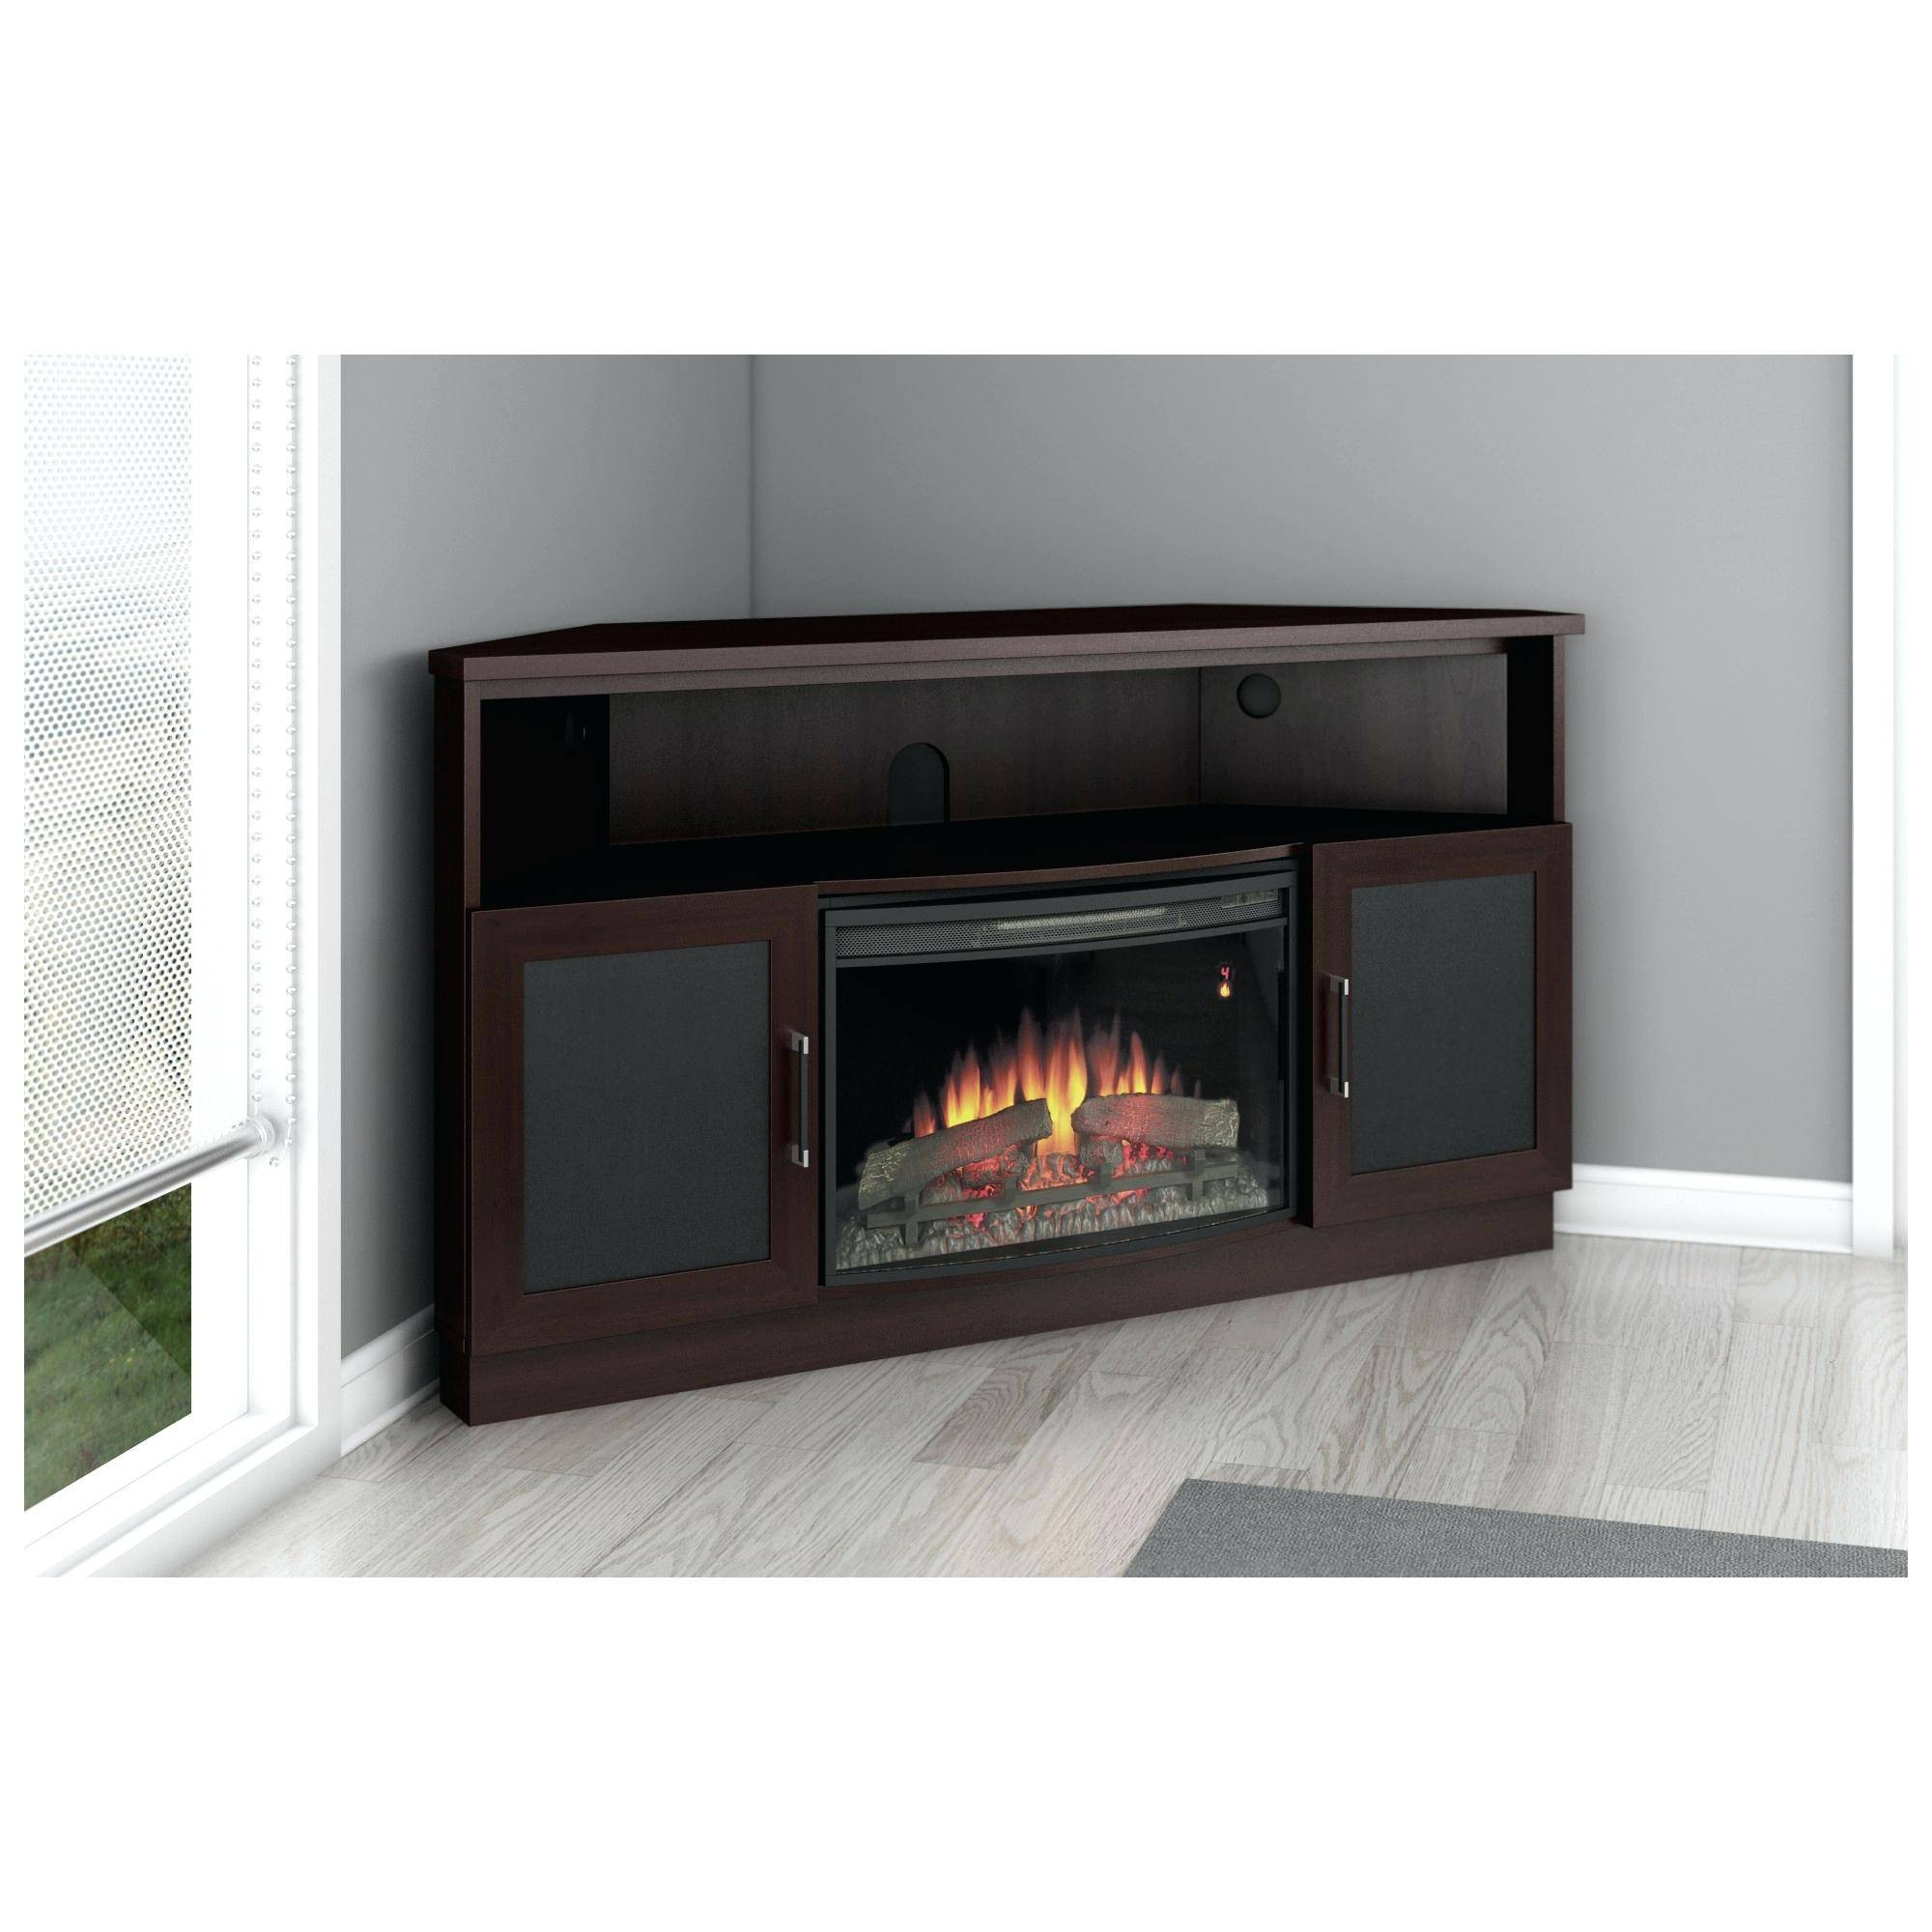 Tv Stand : 78 Black Corner Tv Stand With Fireplace Fireplace regarding Contemporary Corner Tv Stands (Image 12 of 15)